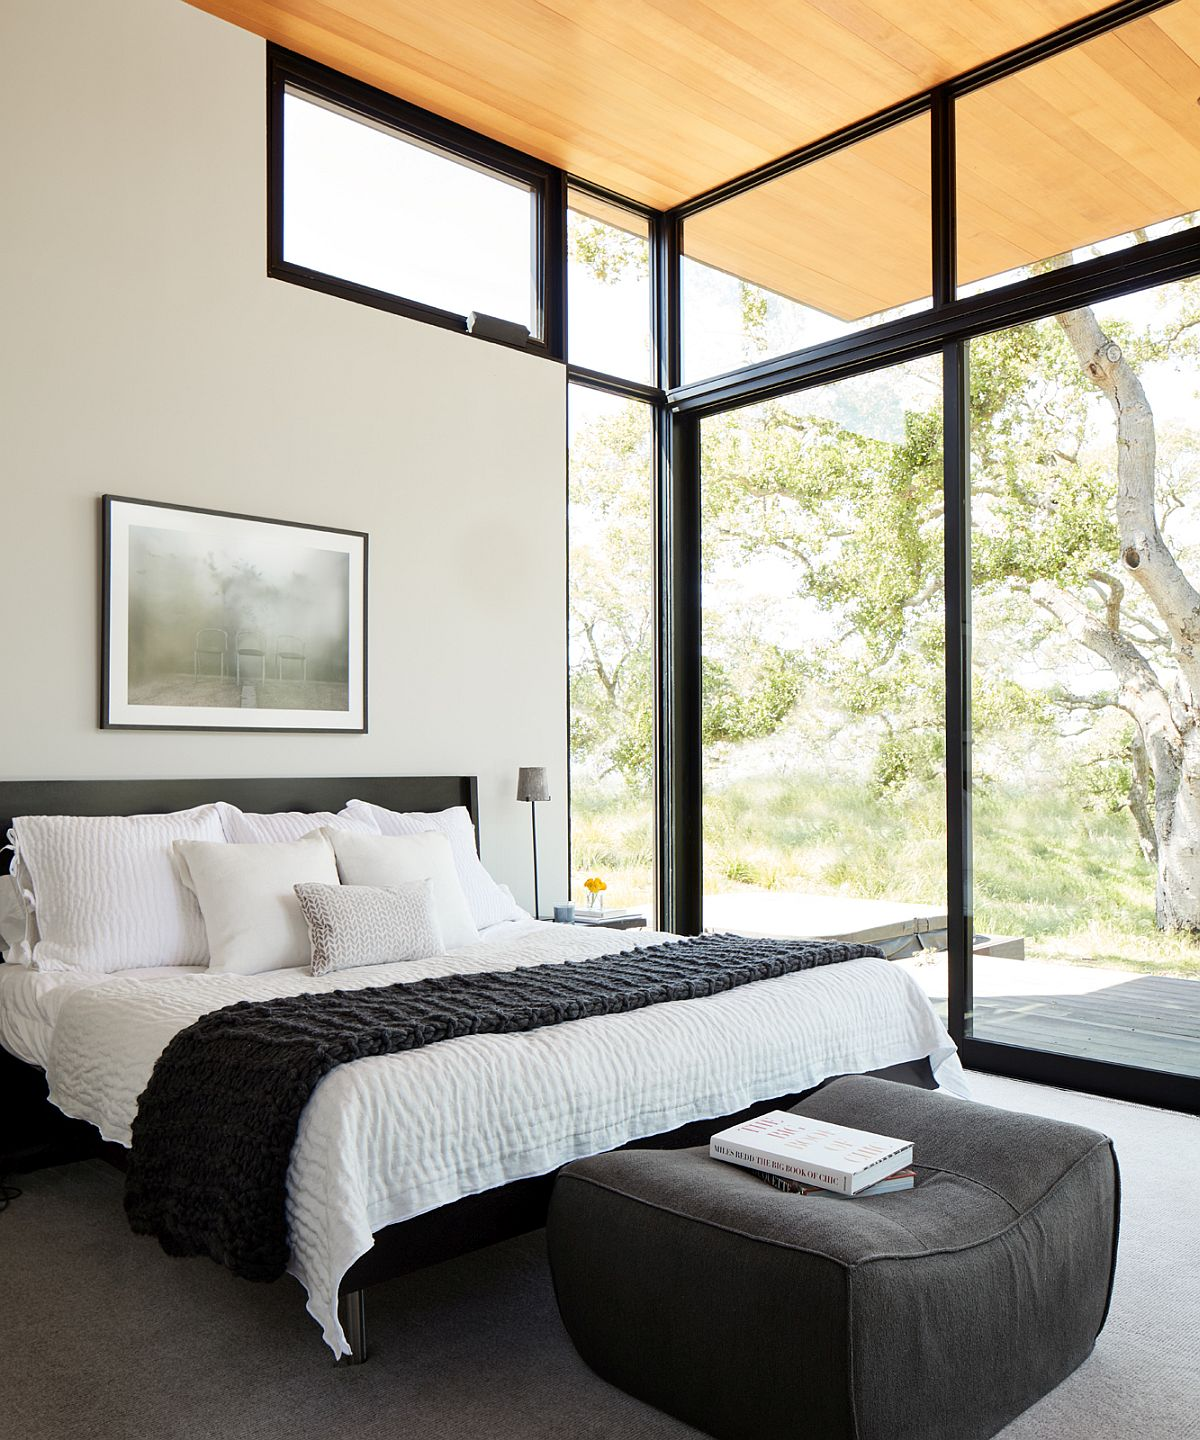 Sliding glass doors and windows connect the bedroom with the landscape